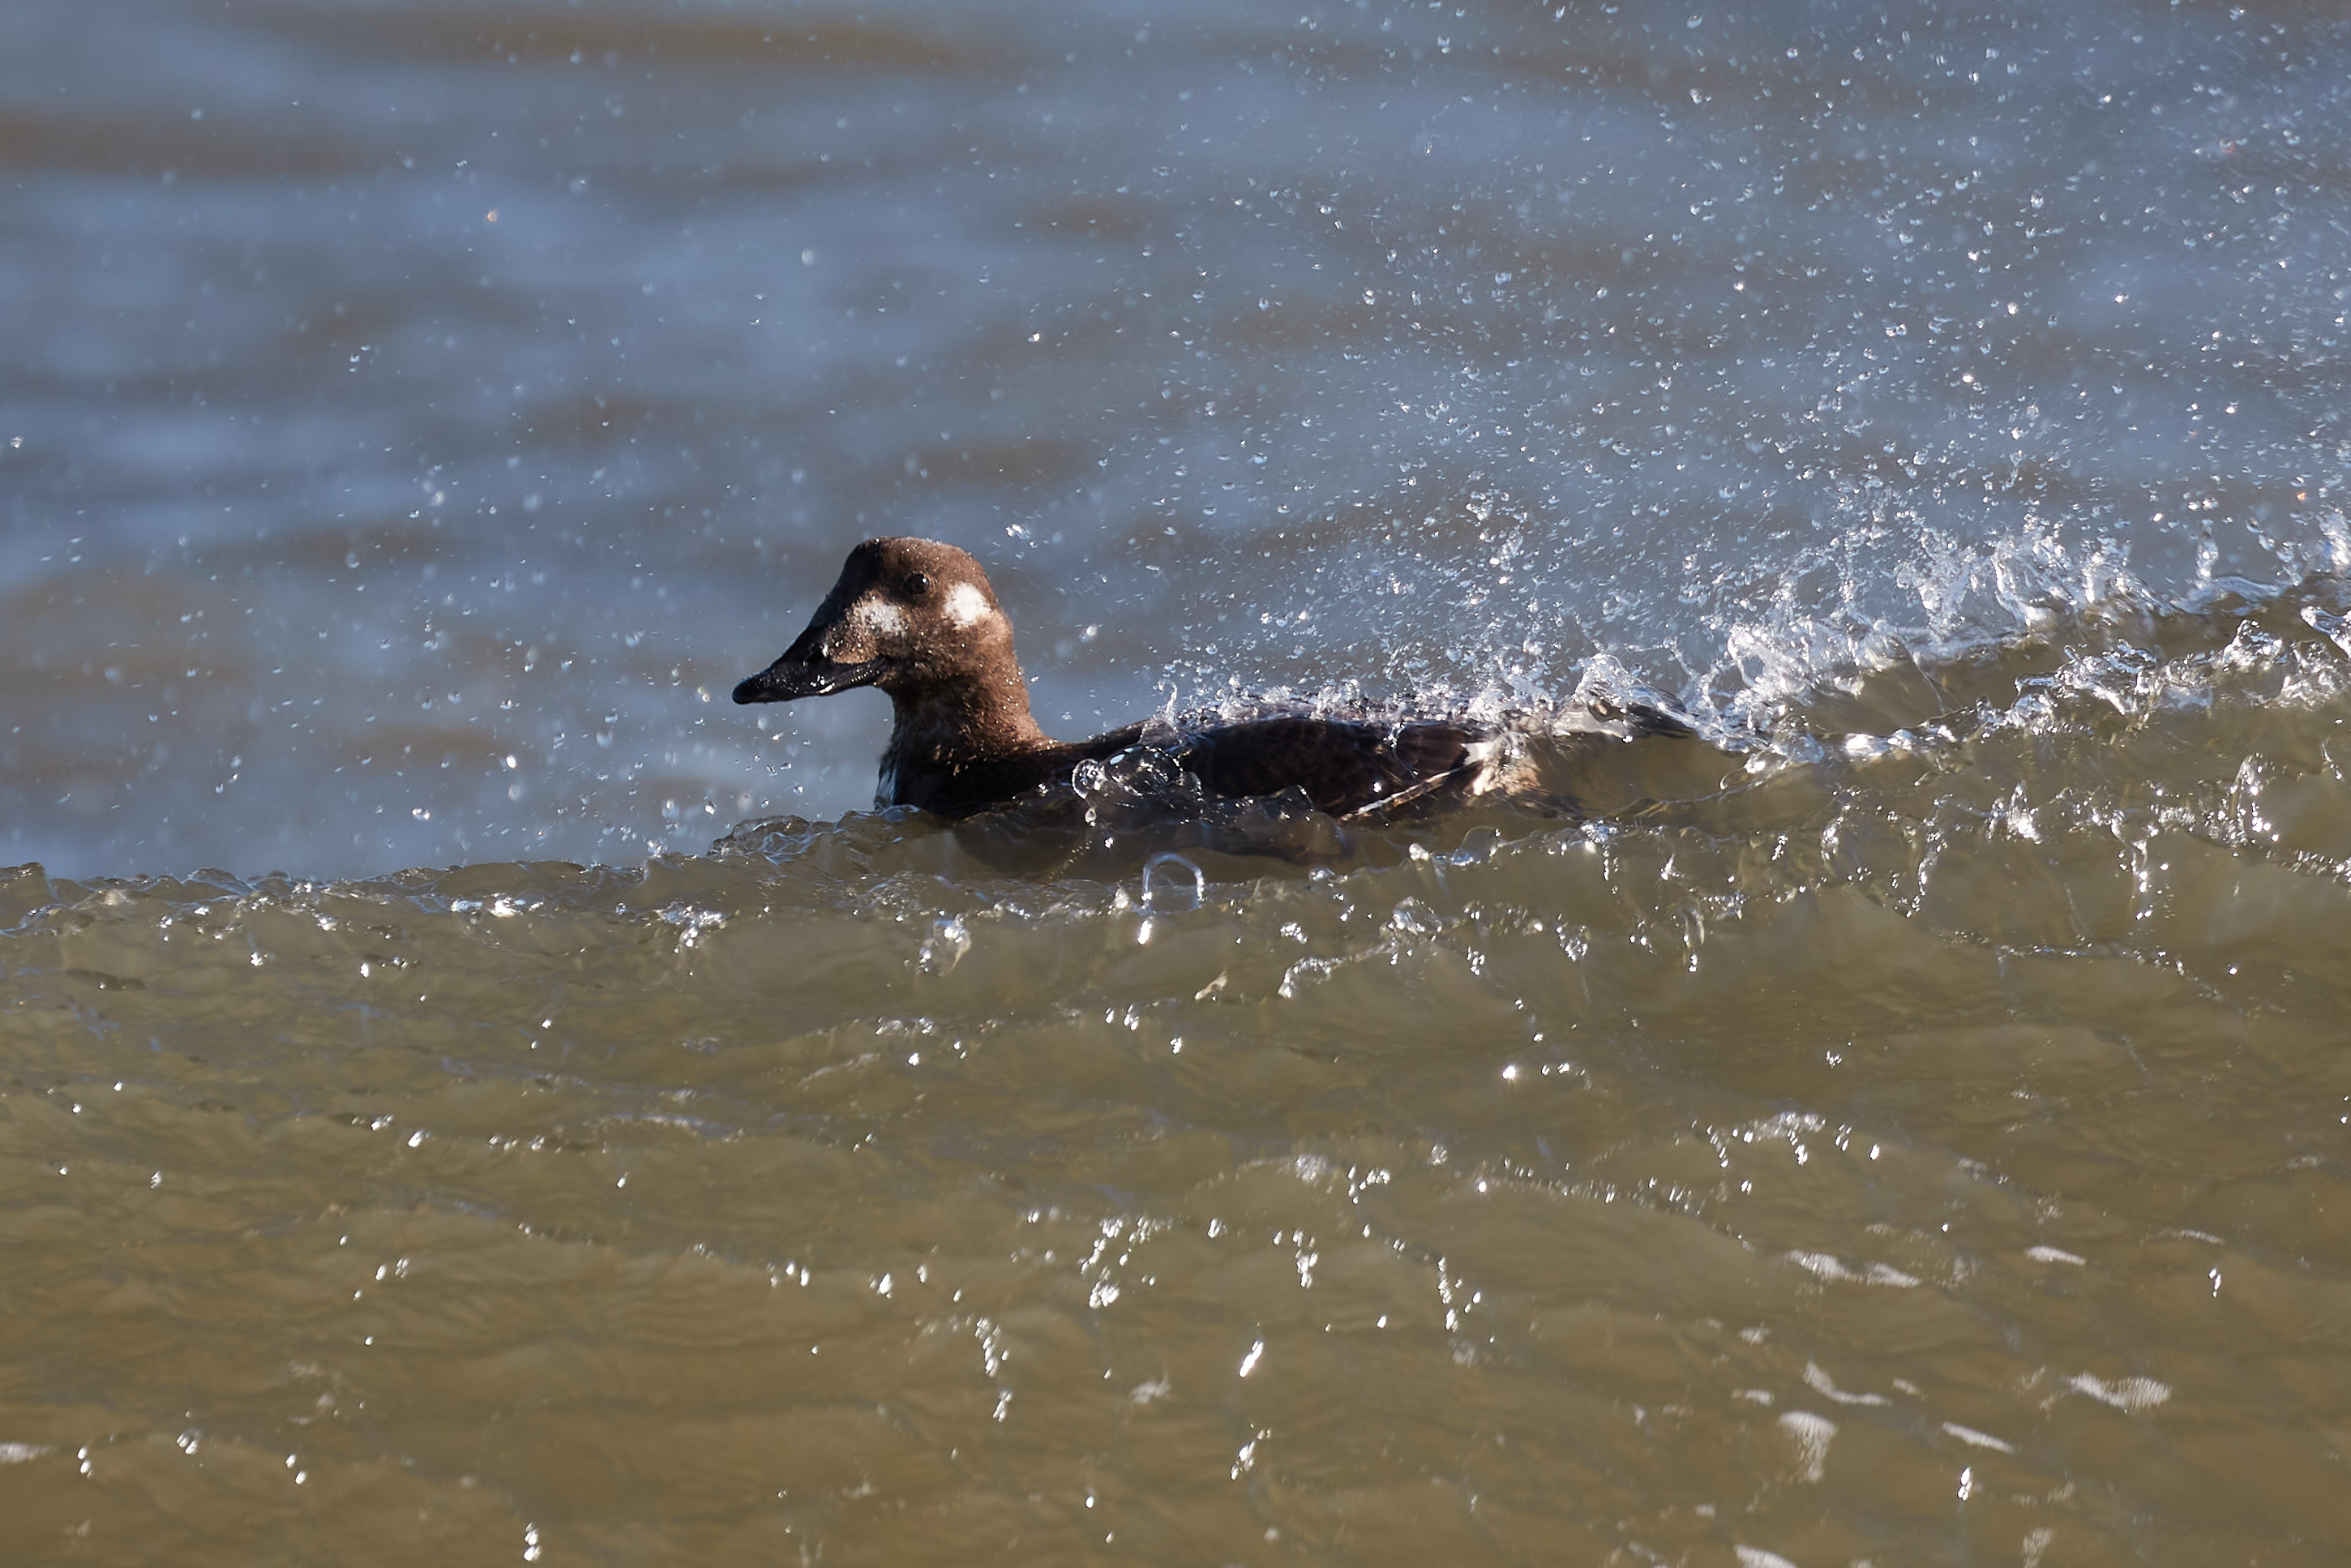 Female long-tailed duck in water.